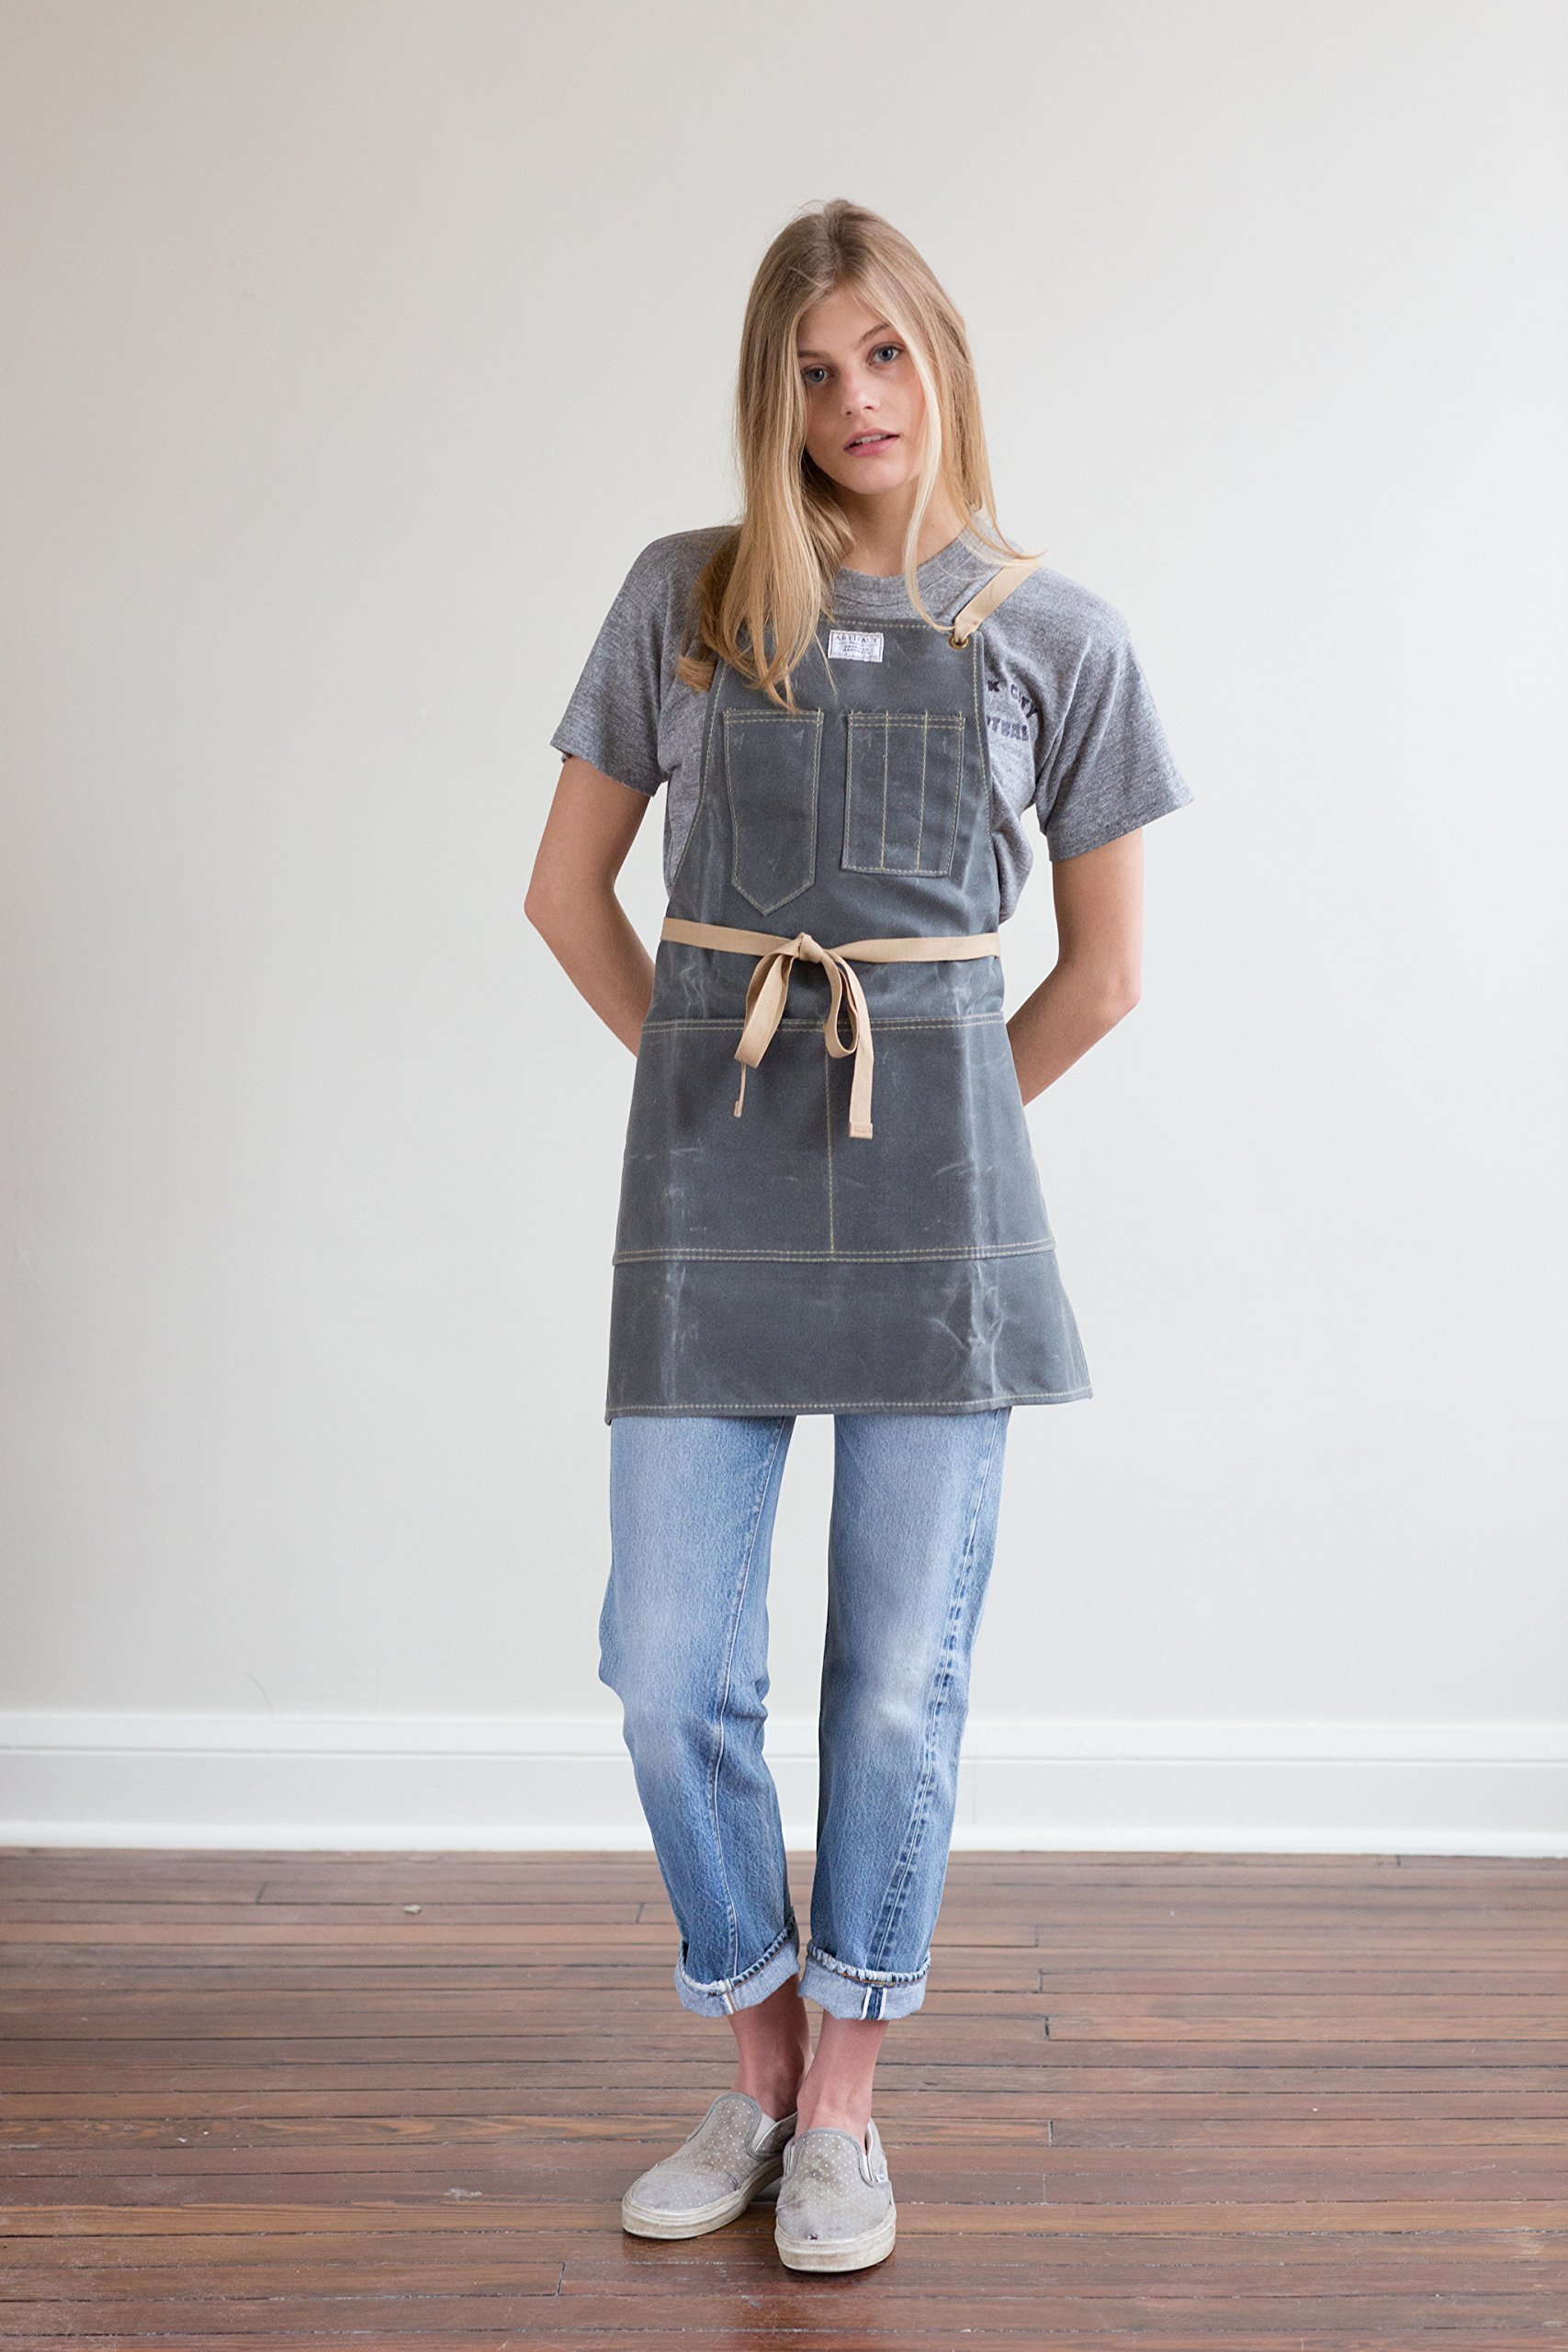 No.325T Artisan Apron in Waxed Canvas - Made in USA by ARTIFACT